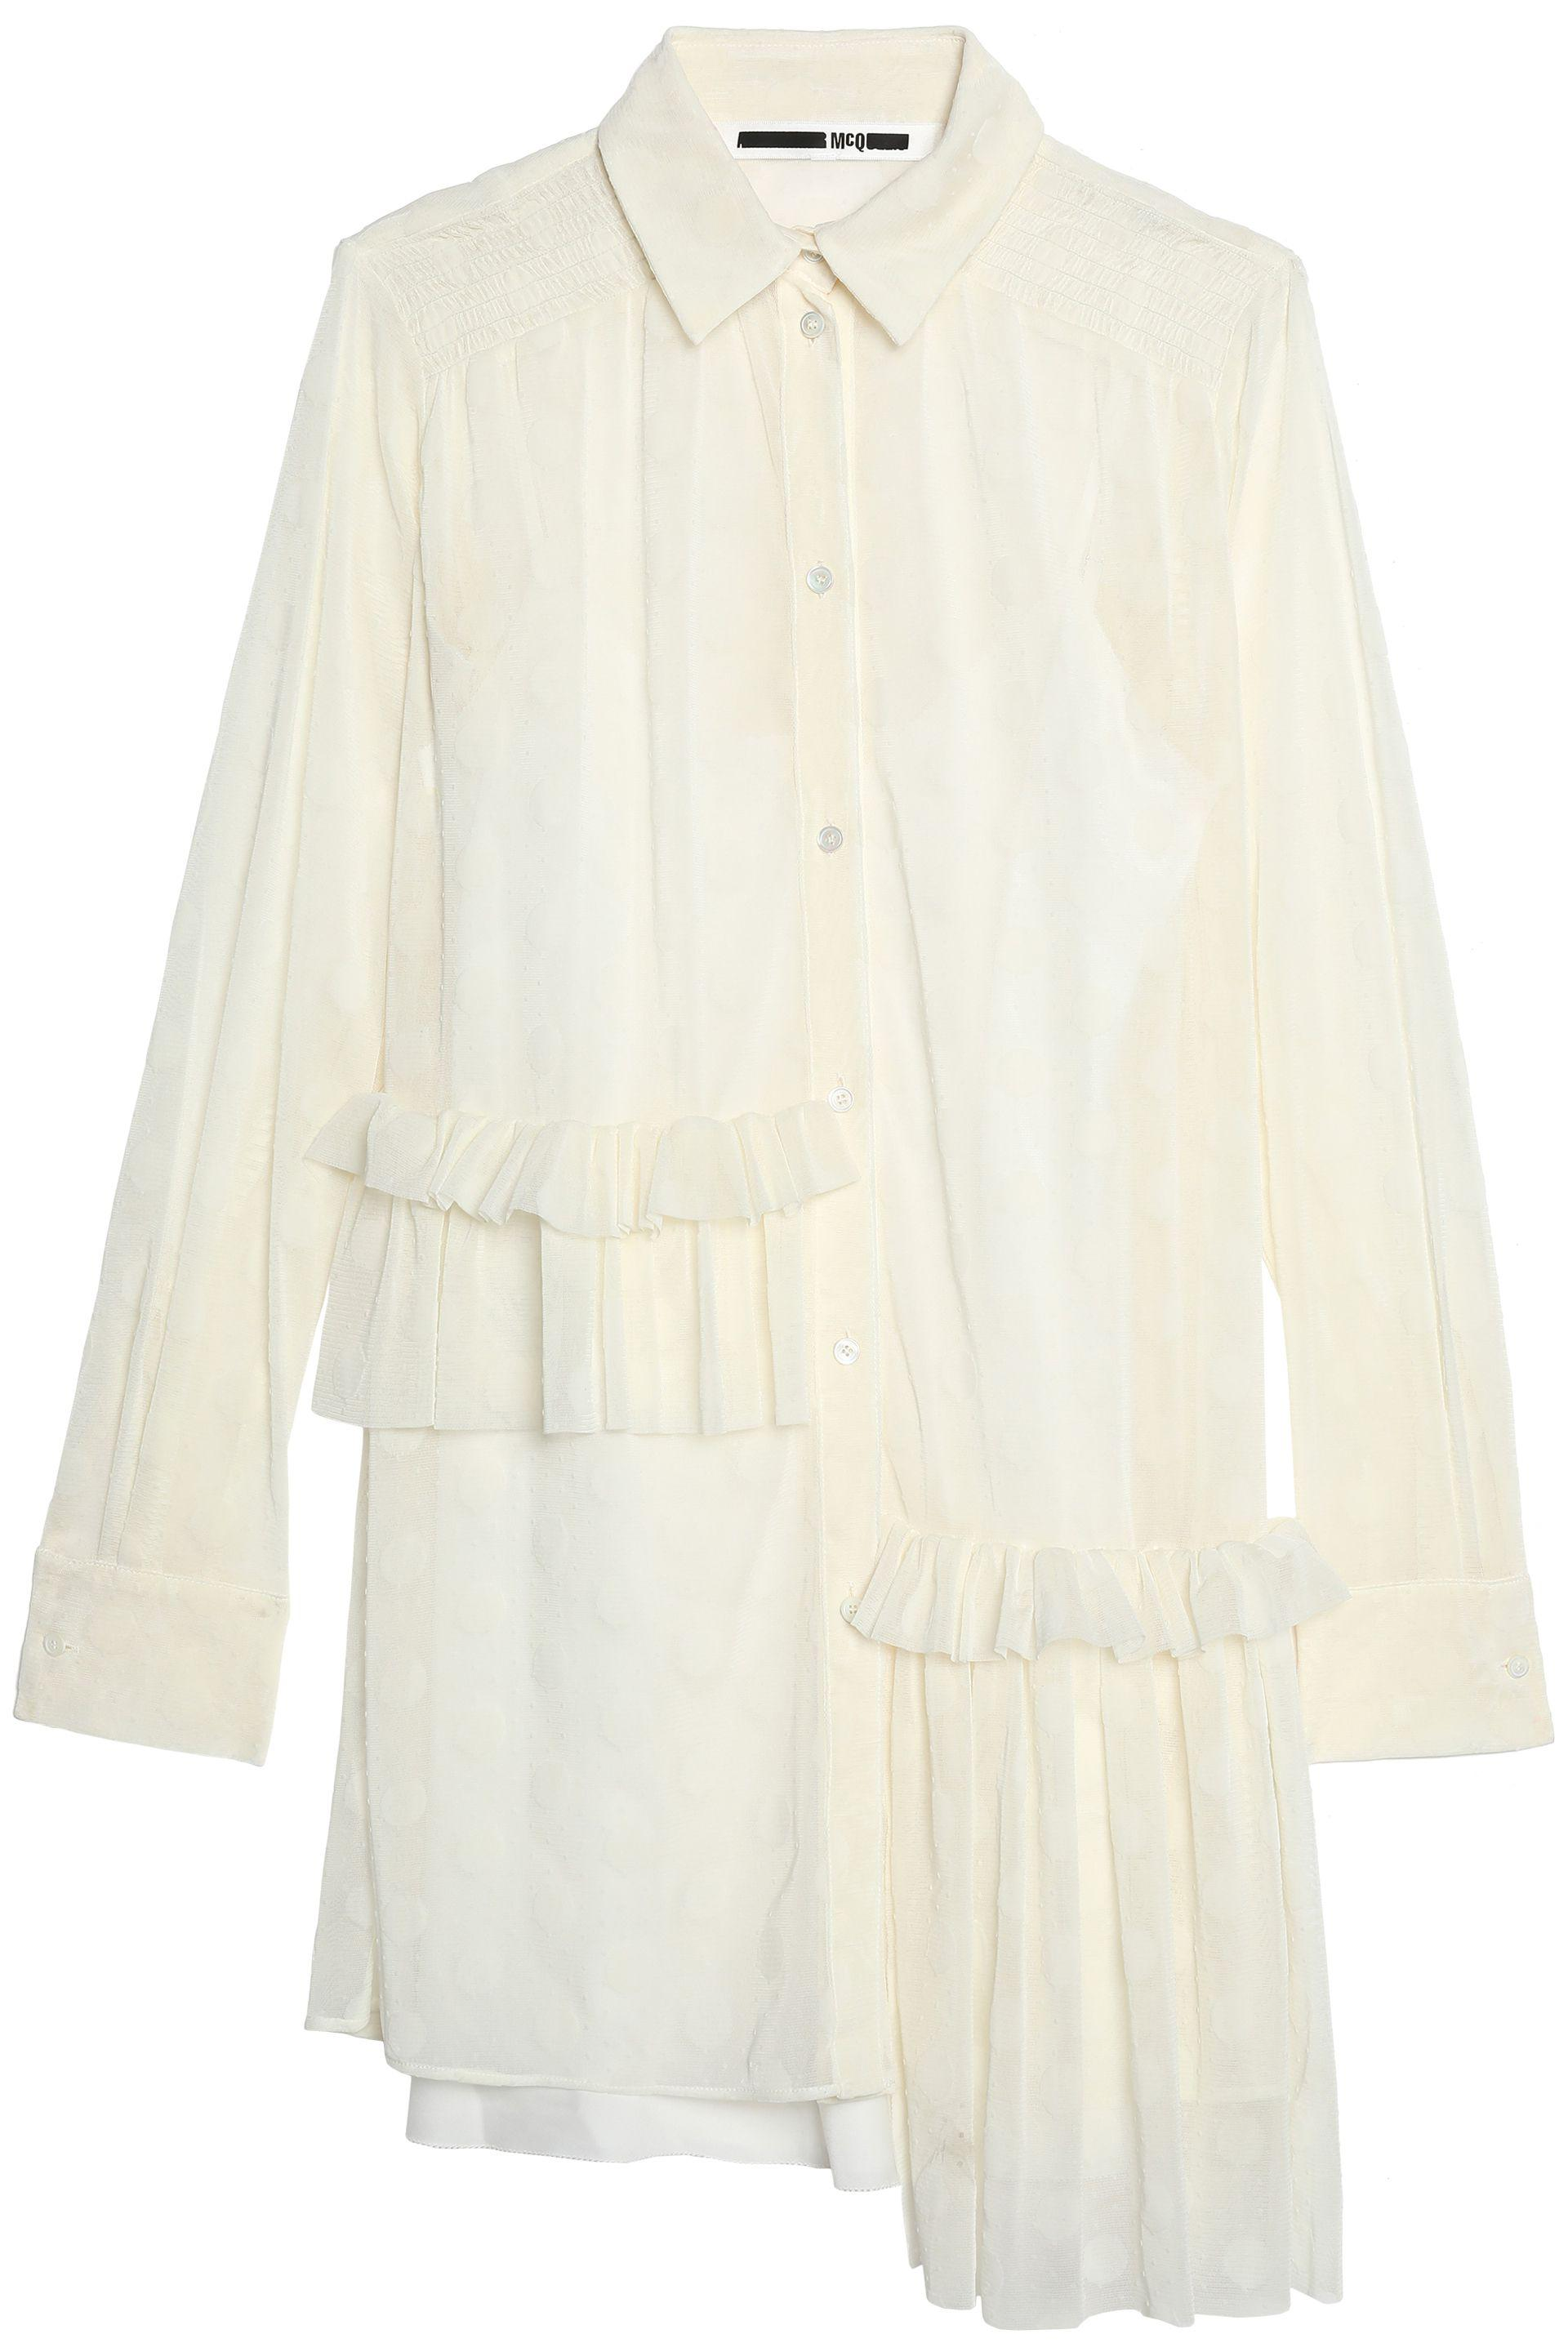 Mcq Alexander Mcqueen Woman Asymmetric Ruffled Flocked Tulle Shirt Dress Ivory Size 42 Alexander McQueen Cheap Get Authentic Sale With Paypal Free Shipping Popular Sale Online Store Outlet 100% Original CMtZs